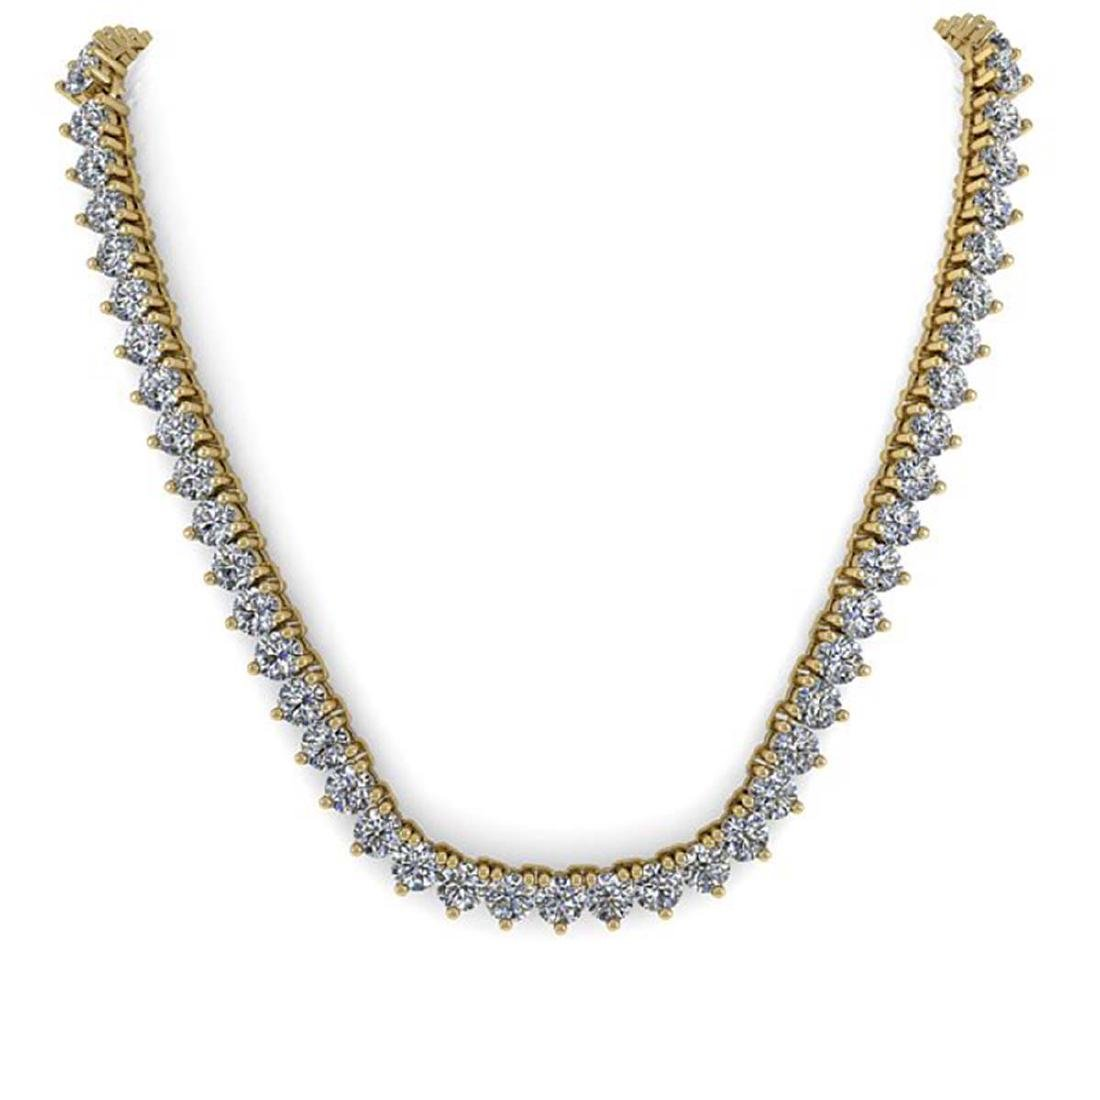 65 ctw Solitaire SI Diamond Necklace 14K Yellow Gold - - 3